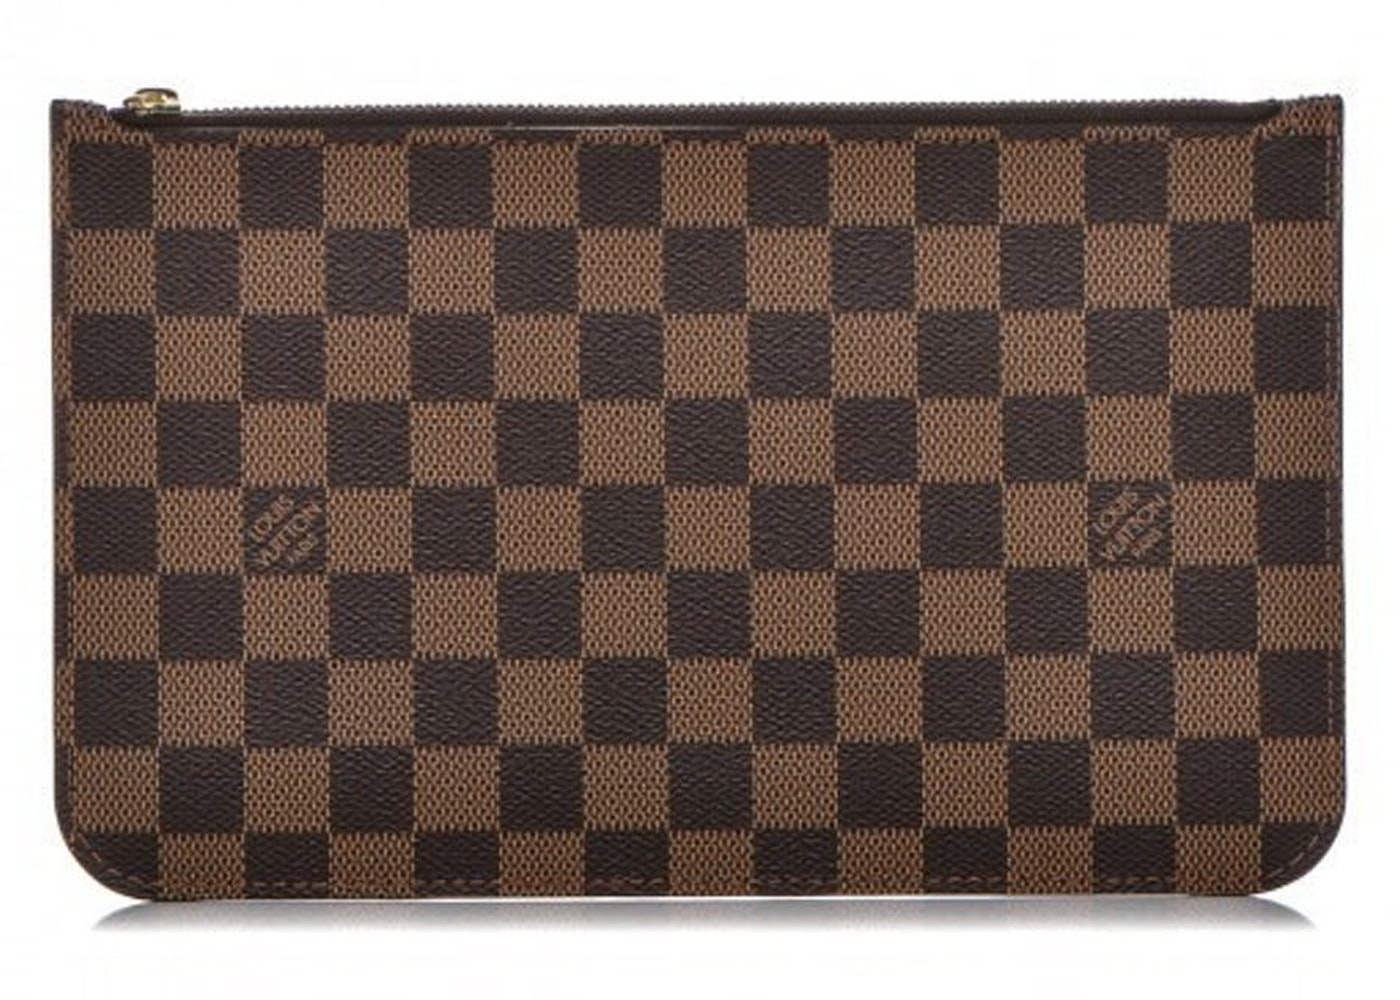 Louis Vuitton Neverfull Pochette Damier Ebene Brown